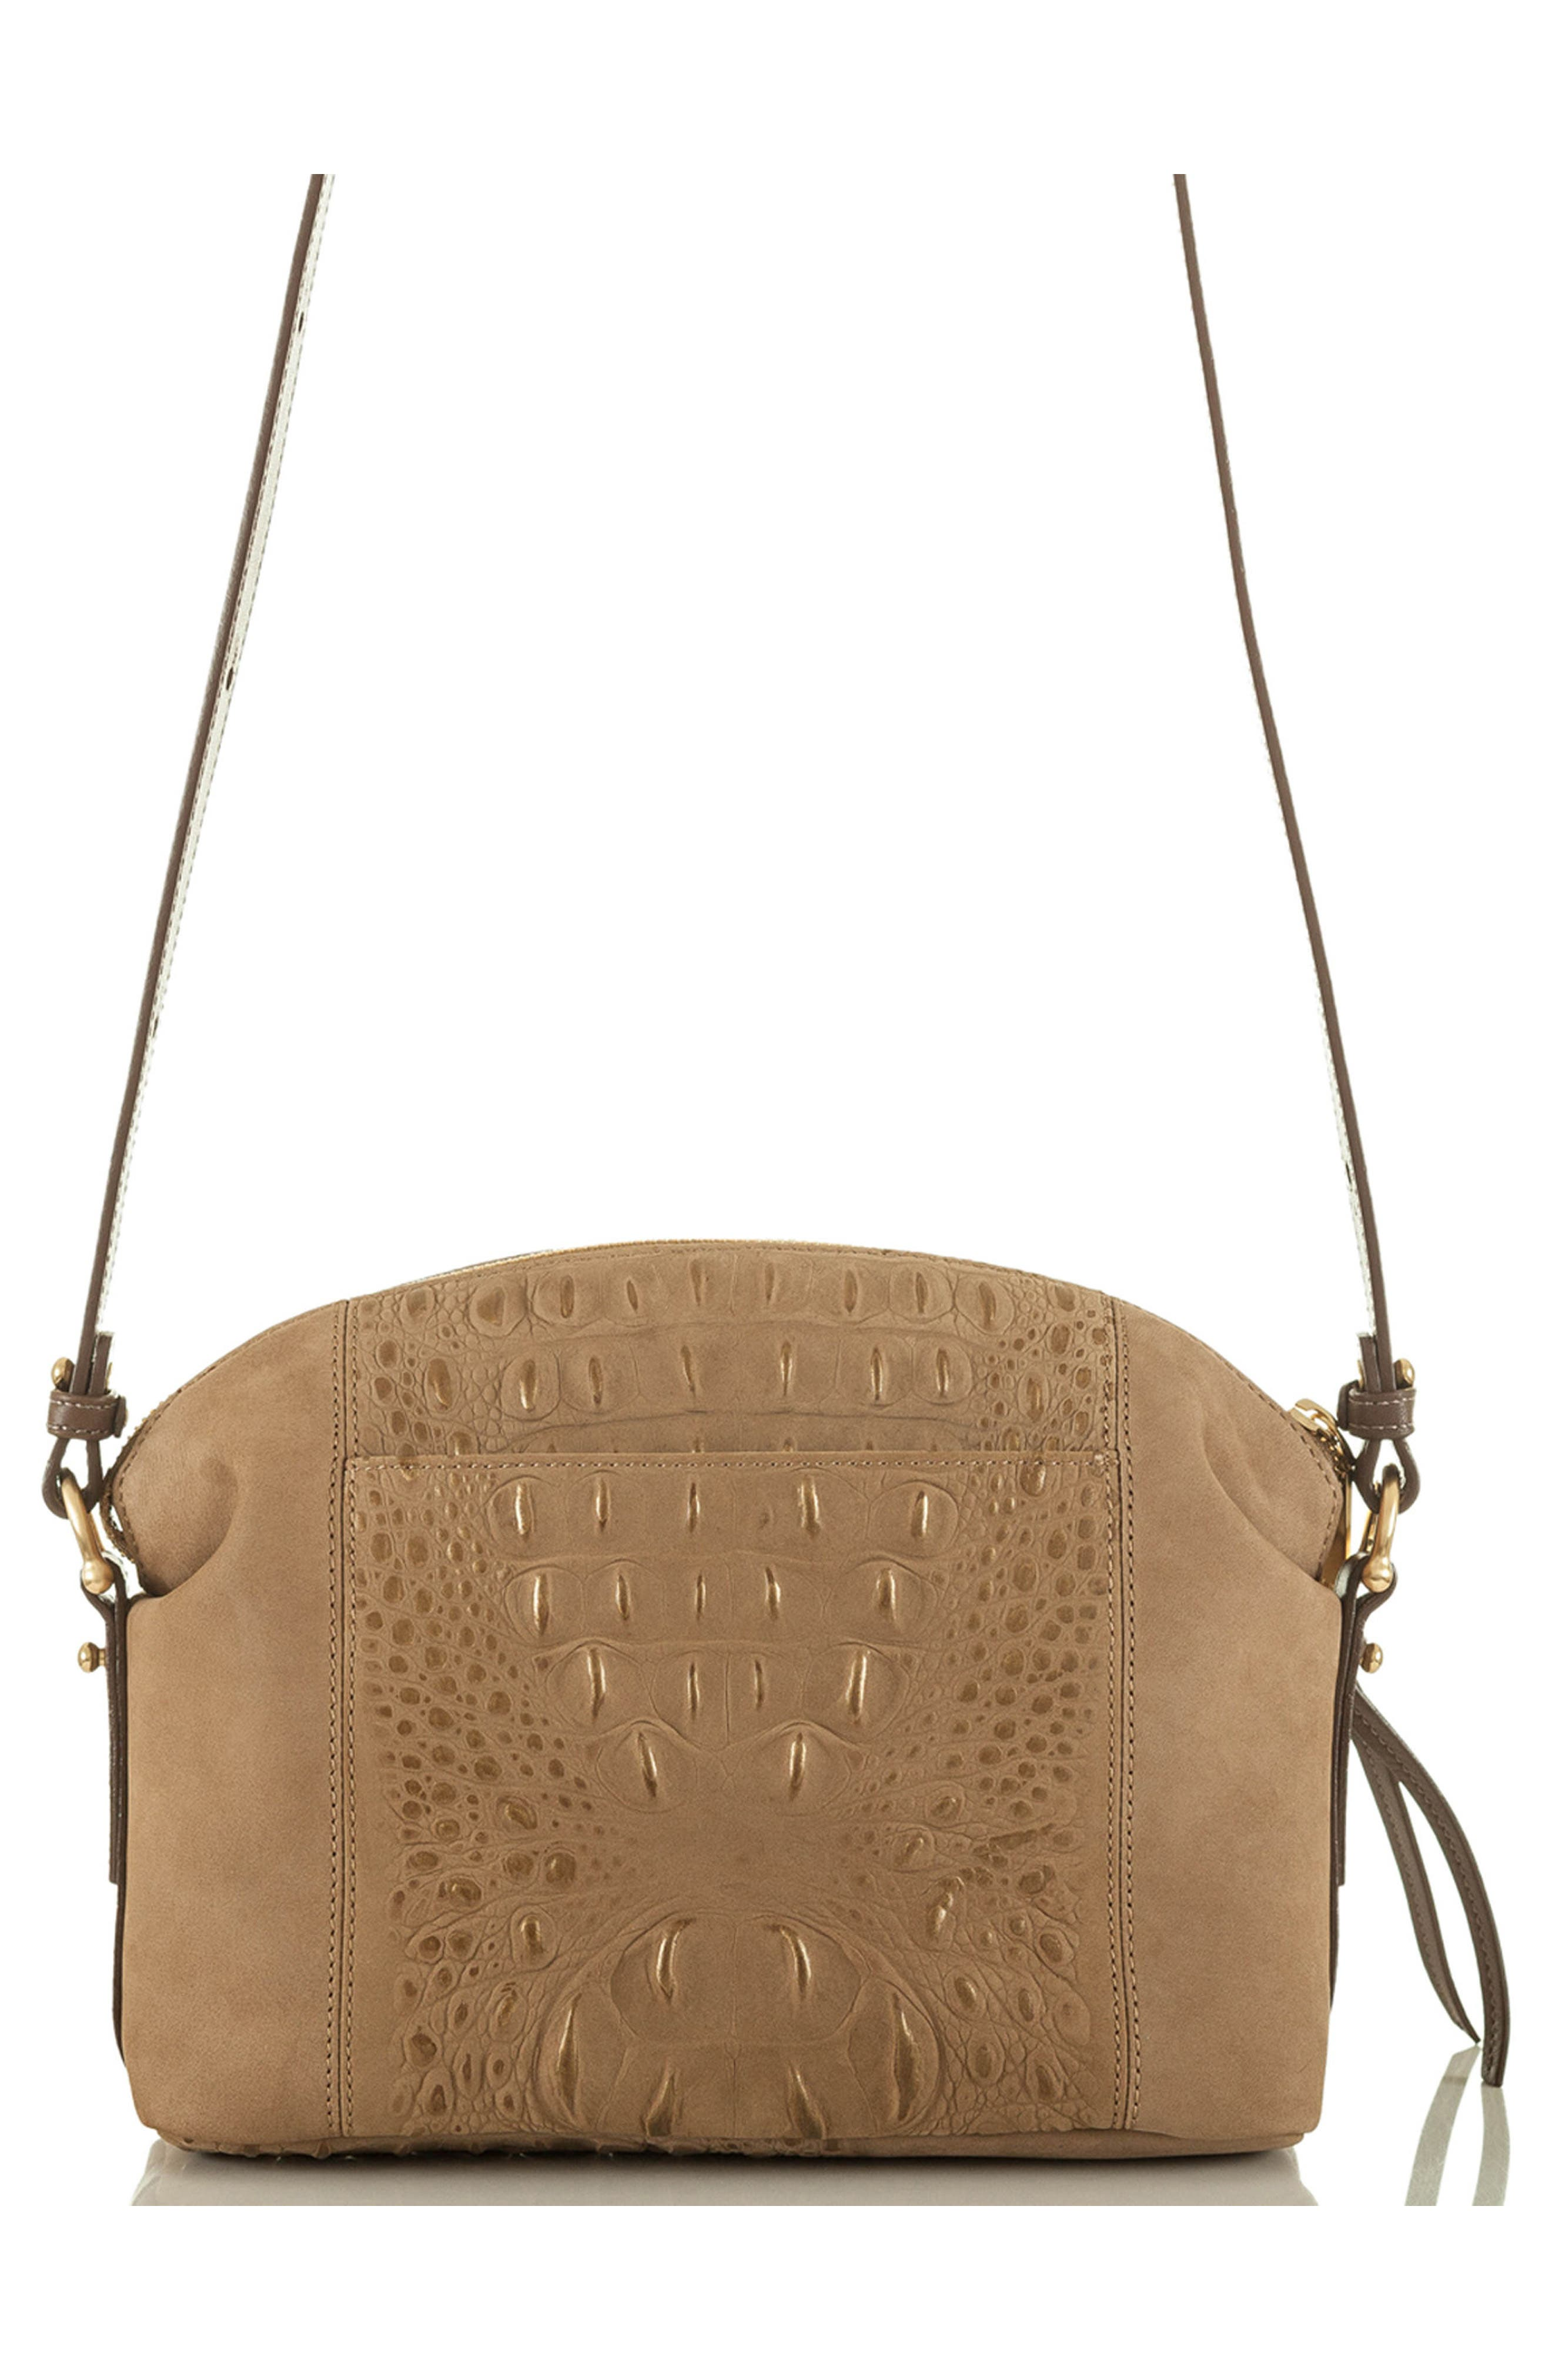 Southcast Haley Metallic Croc Embossed Leather Crossbody Bag,                             Alternate thumbnail 2, color,                             Gold